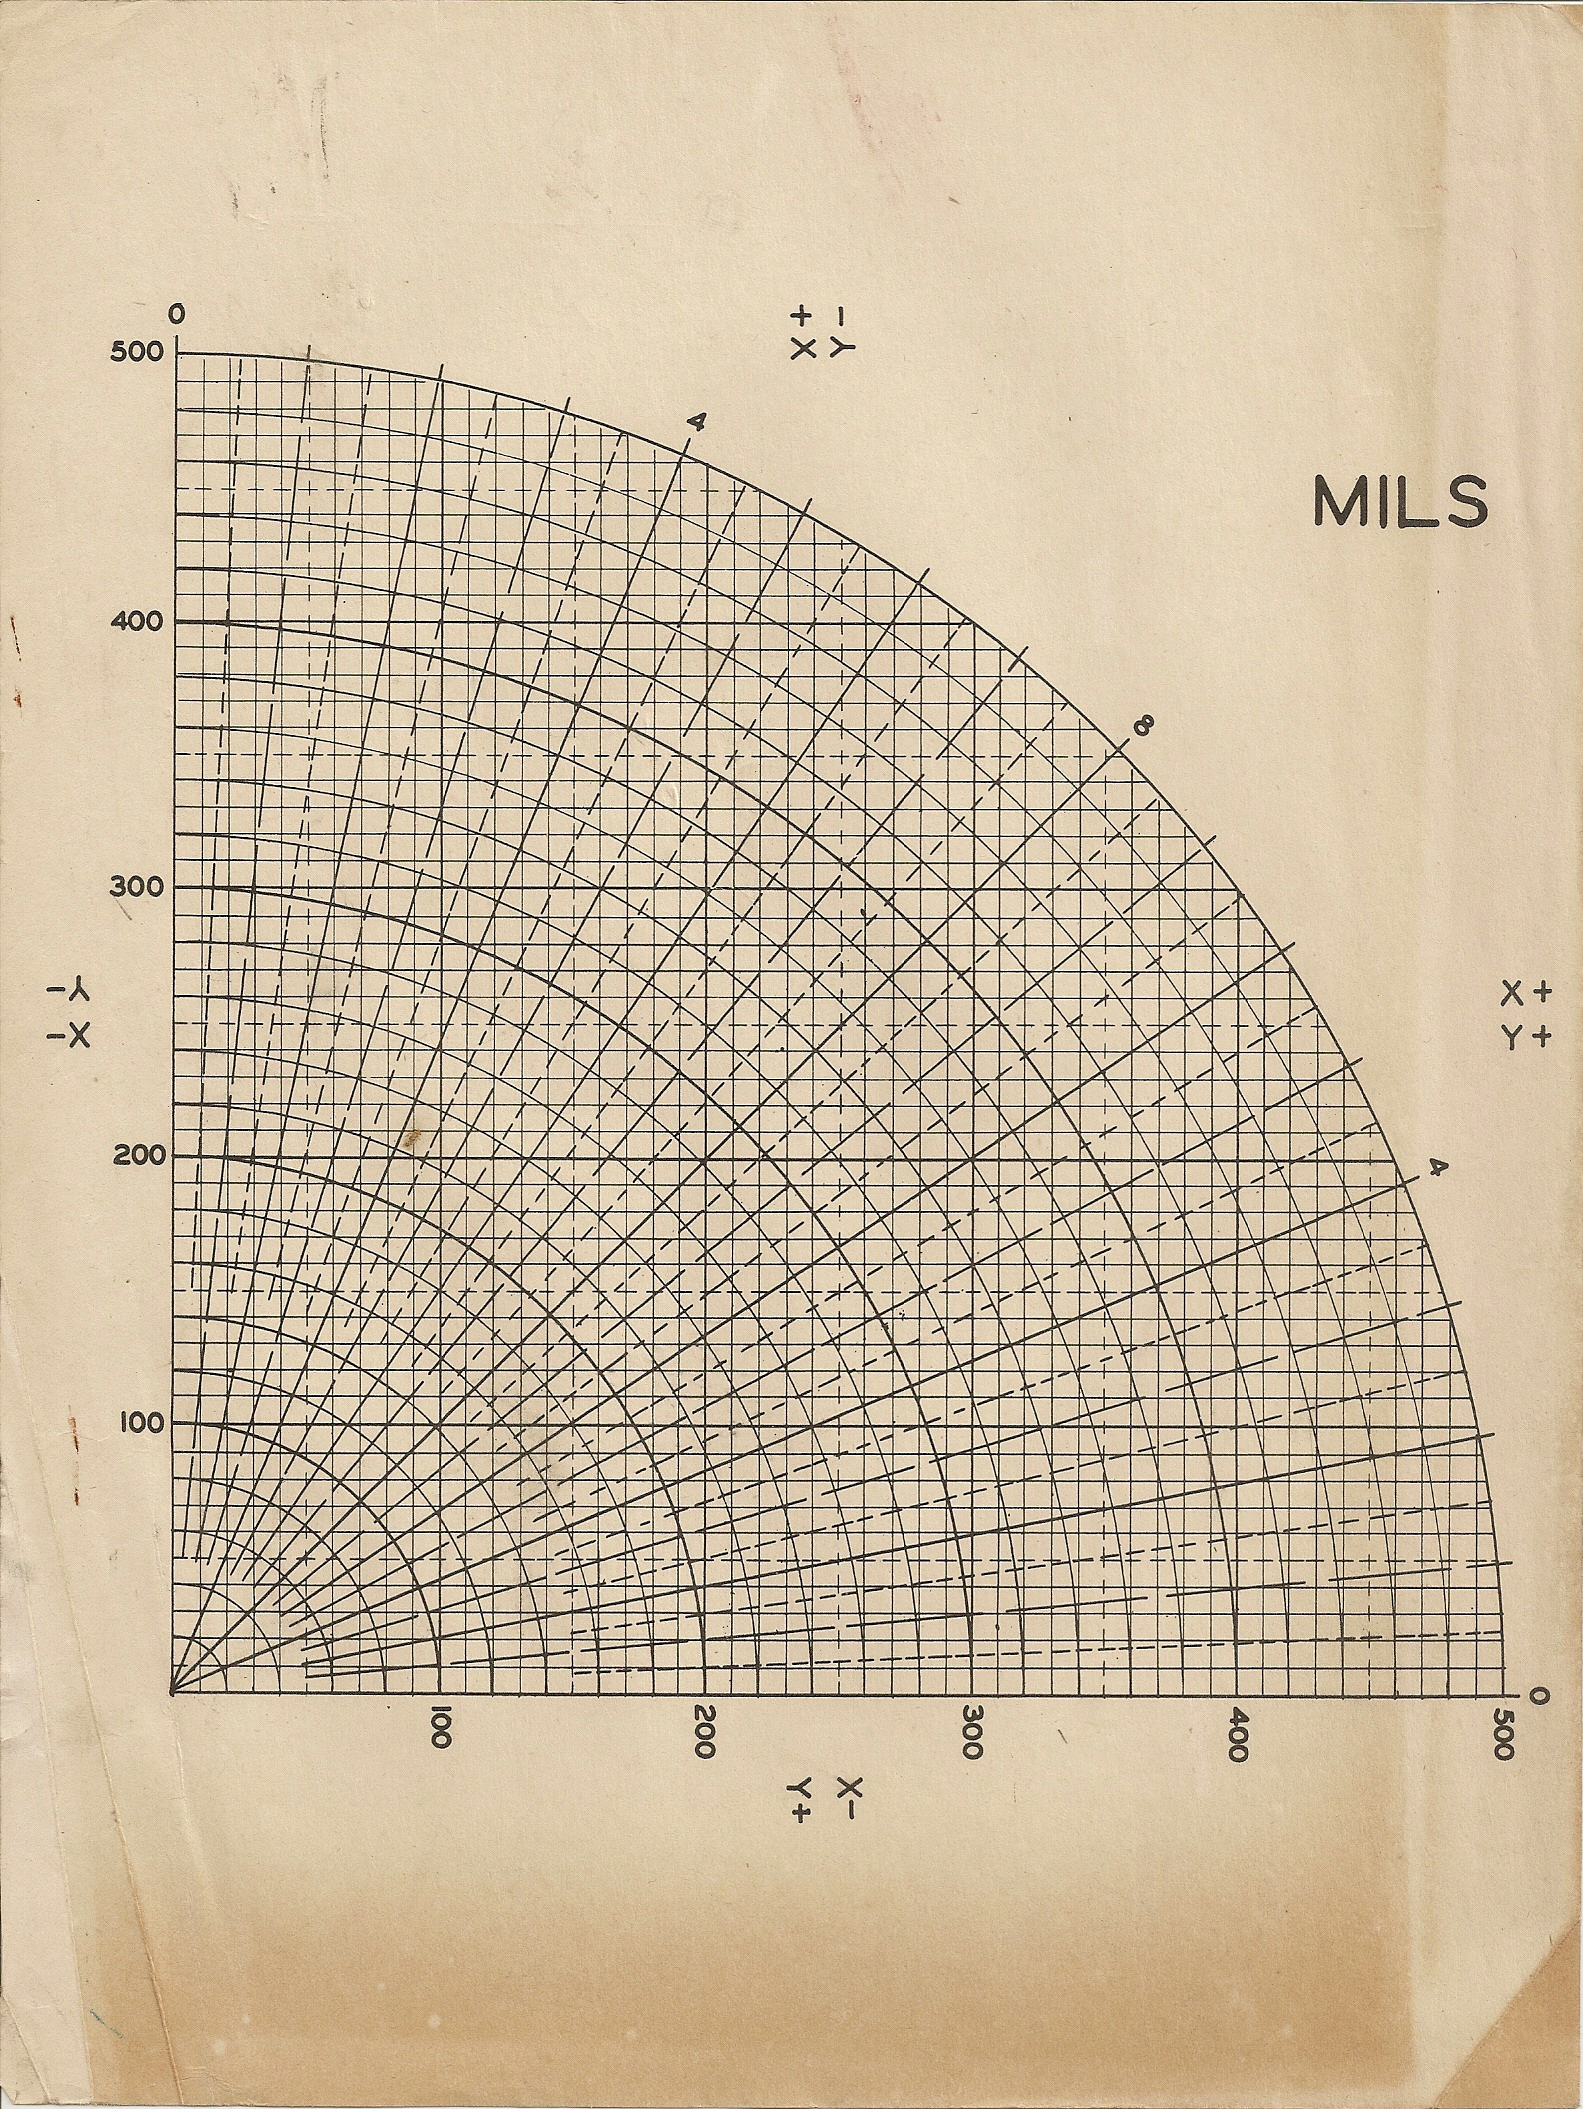 Mil Measurement Chart.jpg